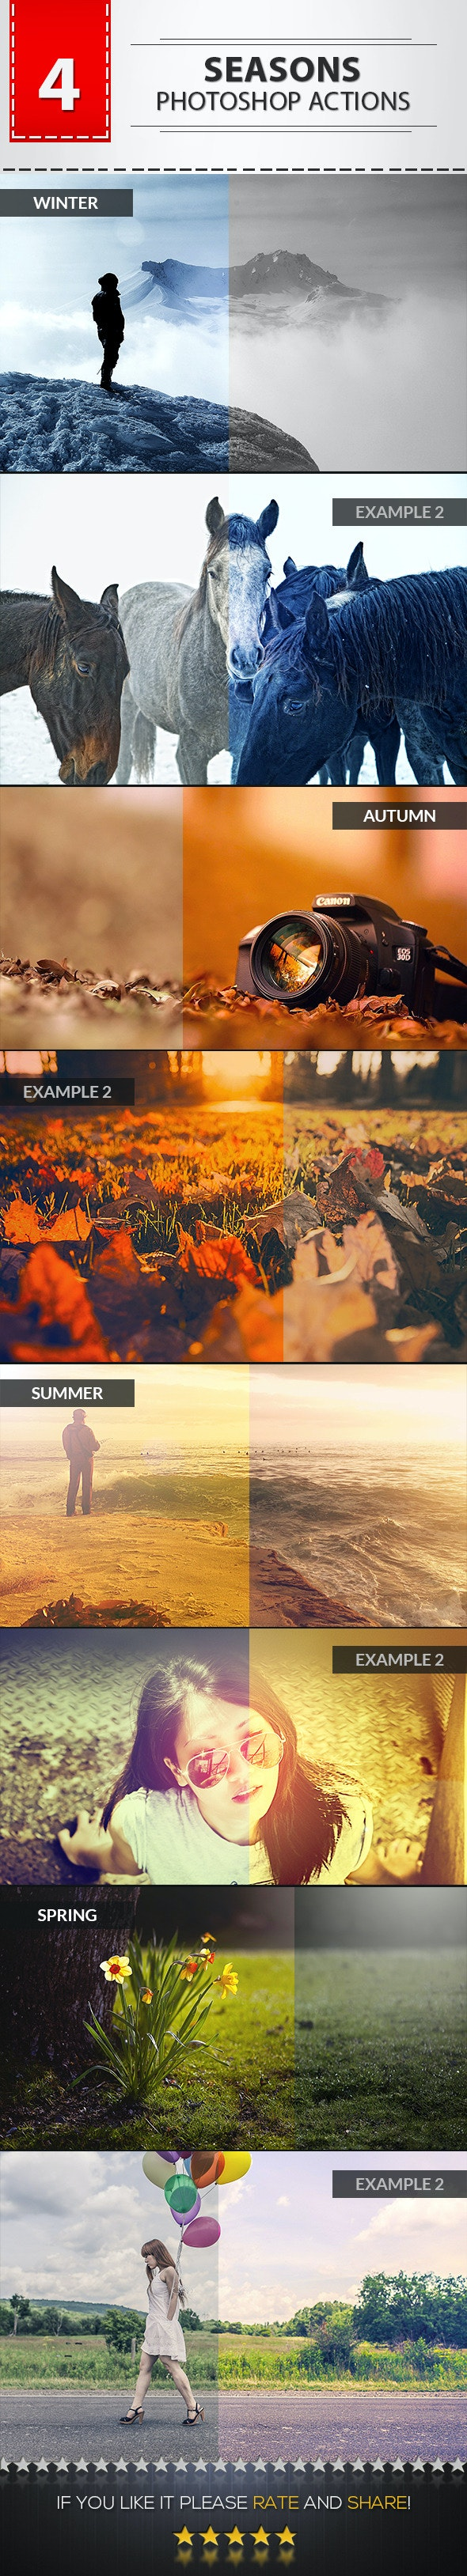 4 Seasons Photoshop Actions - Photo Effects Actions